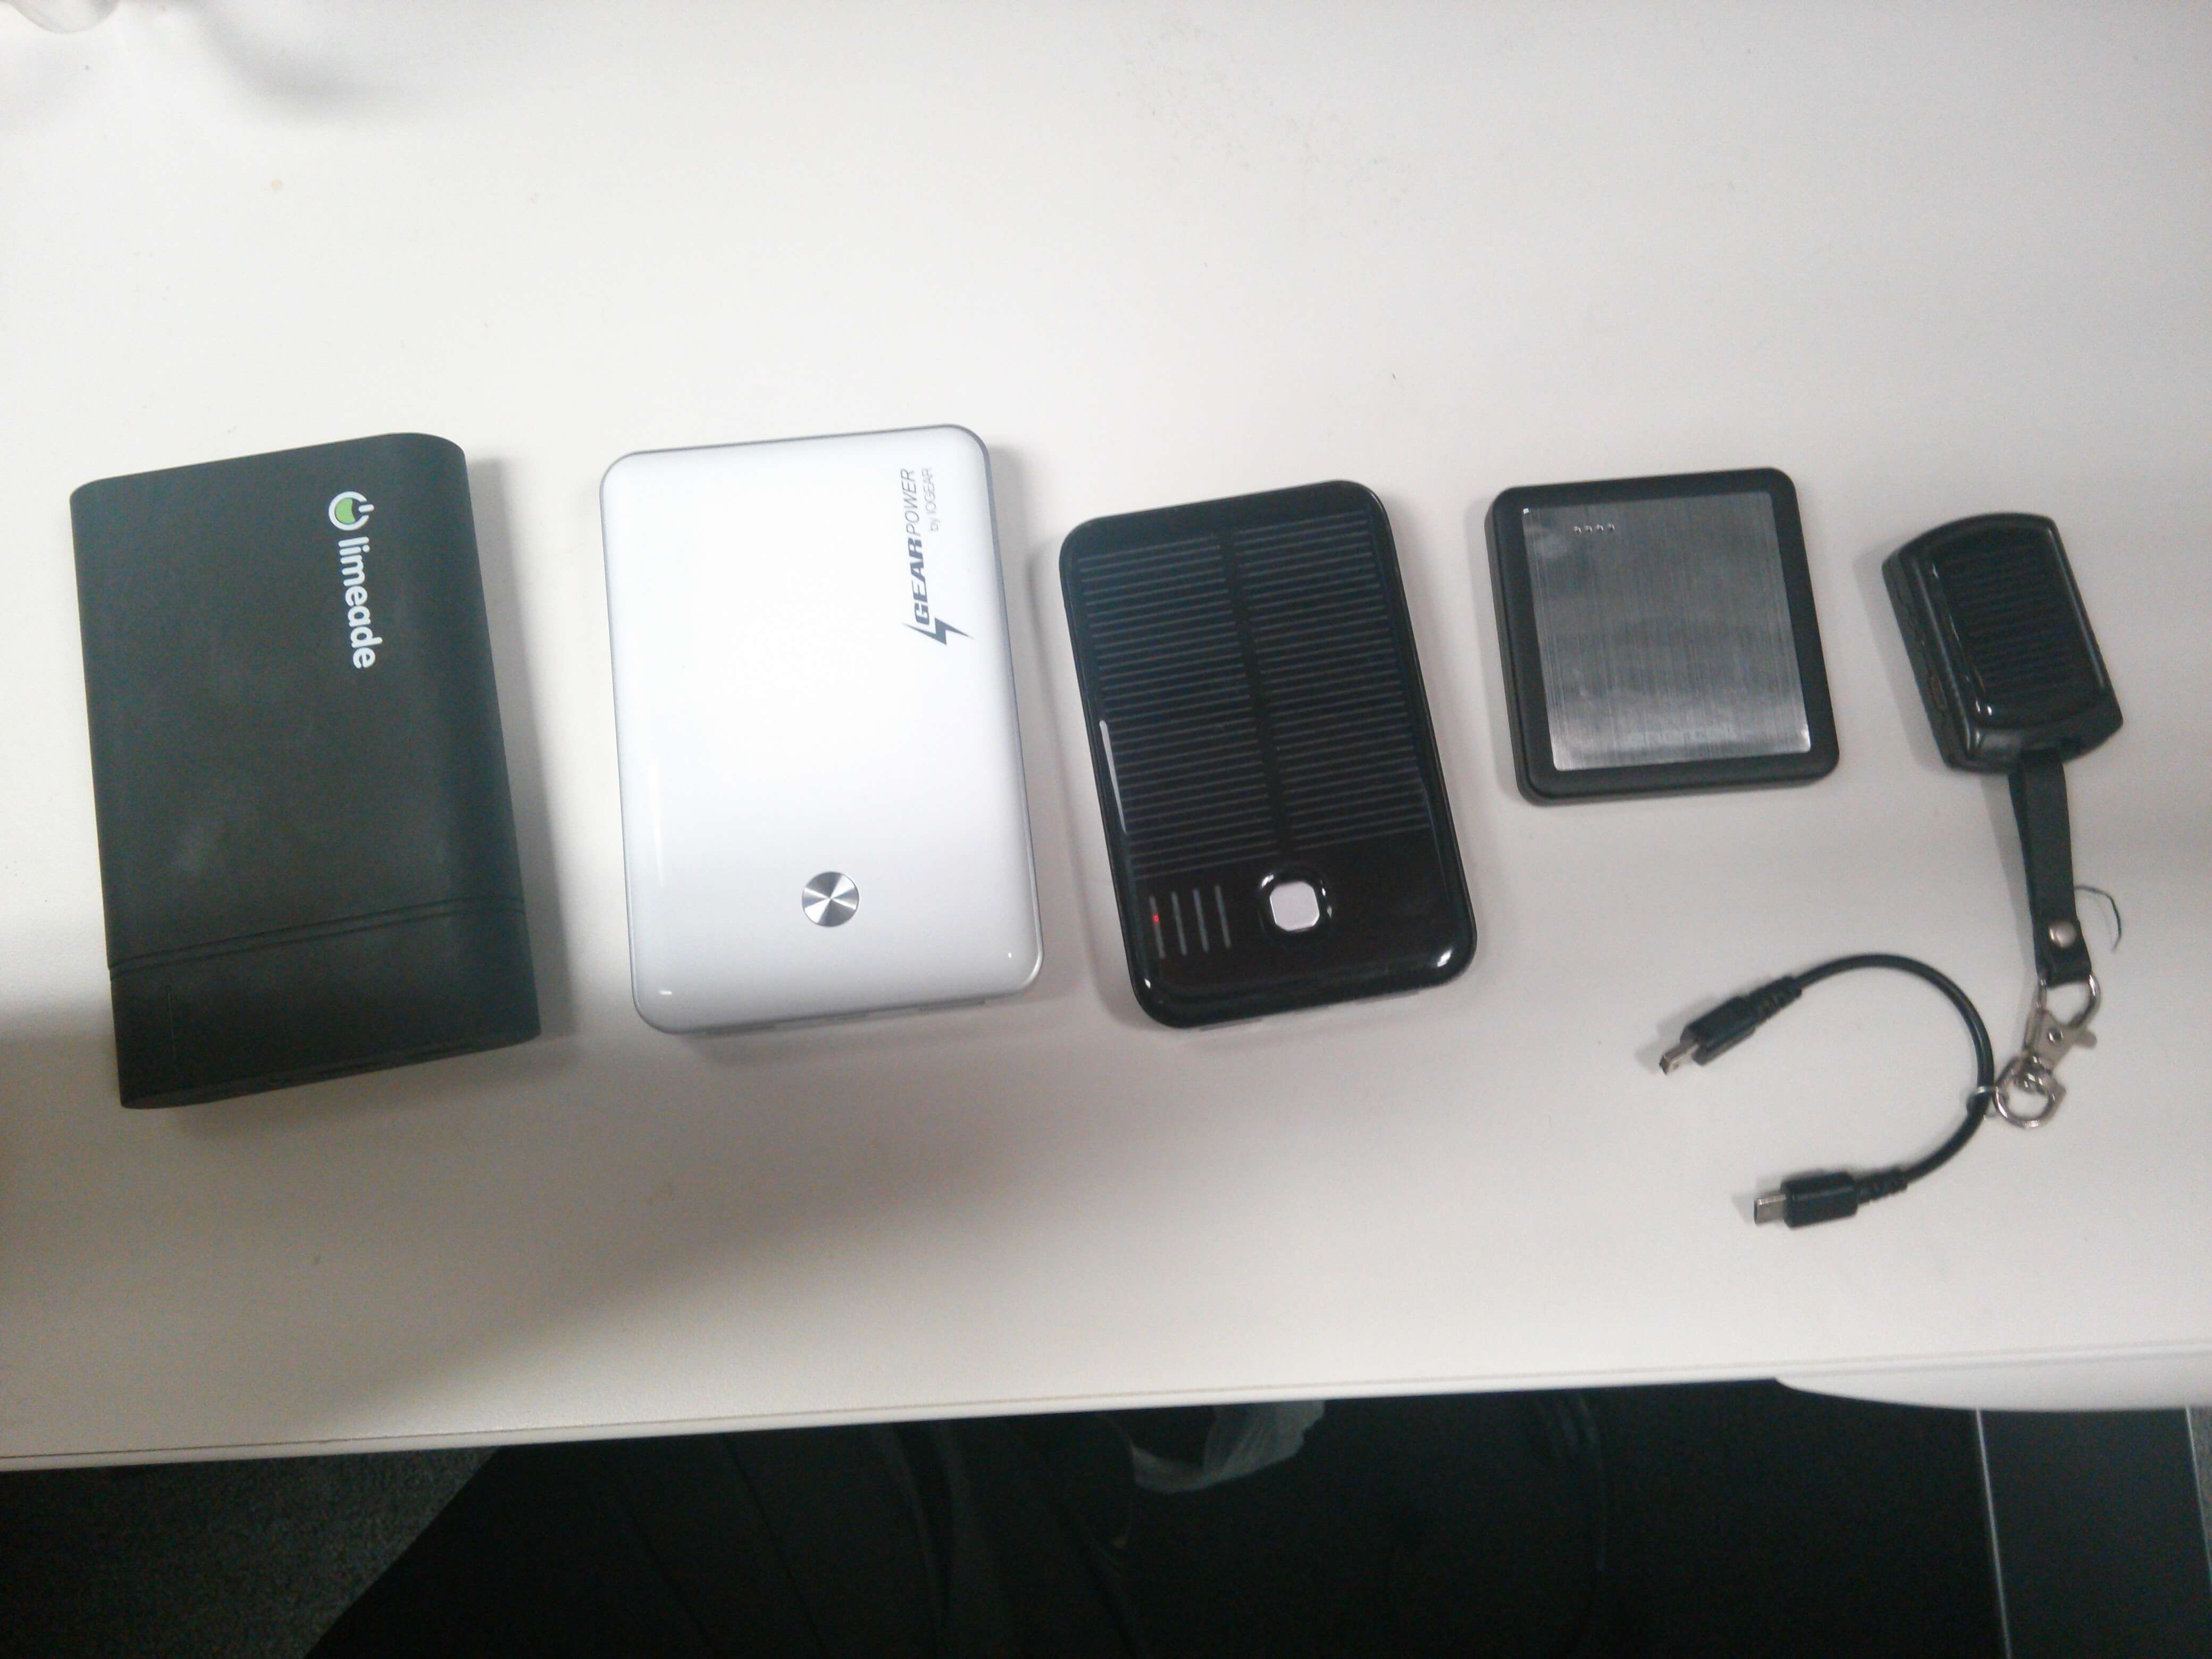 Yeh.... I sort of have an obsession with USB Battery Packs.  1x LimeAid 18,000 mAh Battery Pack 1x GearPower 11,000 mAh Battery Pack 1x 5,000 mAh Solar Battery 1x 1,350 mAh Battery 2x 300 mAh Emergency Solar Battery Pack 1x Mophie JuicePack for the HTC One  Living in Florida means that it is not abnormal to be without Power due to Tropical Storms and Hurricanes.